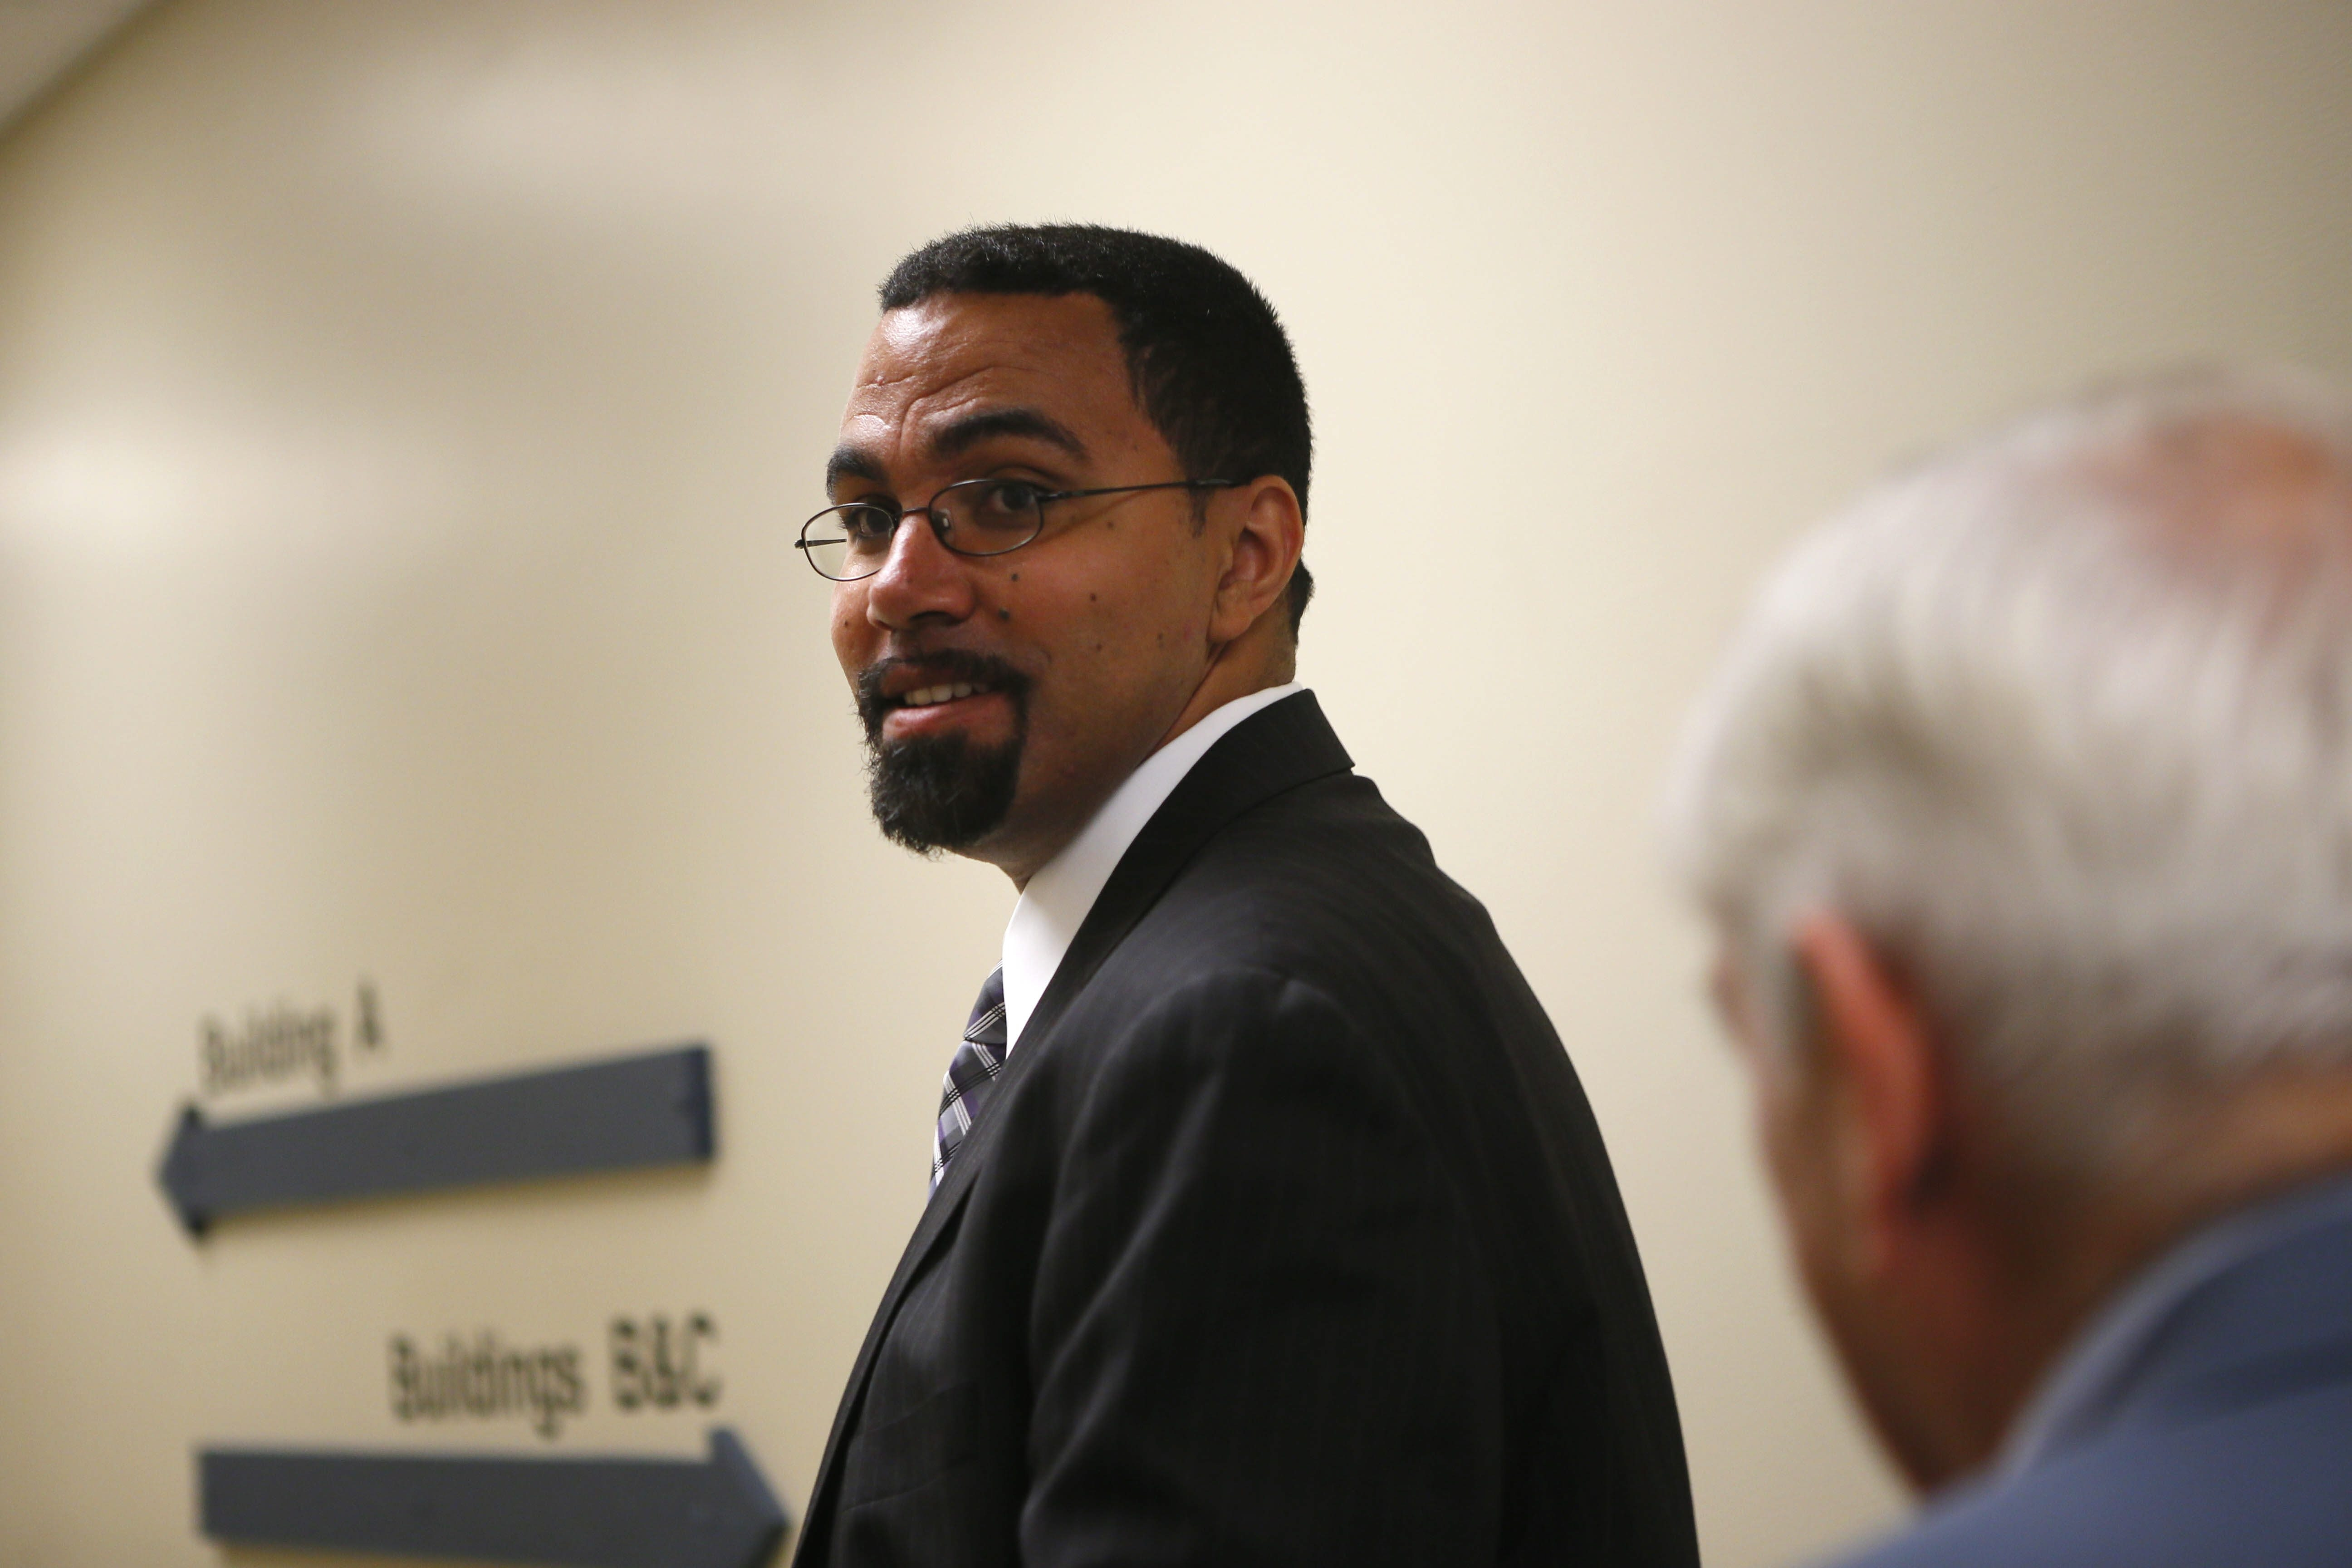 State Education Commissioner John B. King Jr. is criticized for canceling community meeting scheduled for next week in Williamsville. (Derek Gee/Buffalo News file photo)